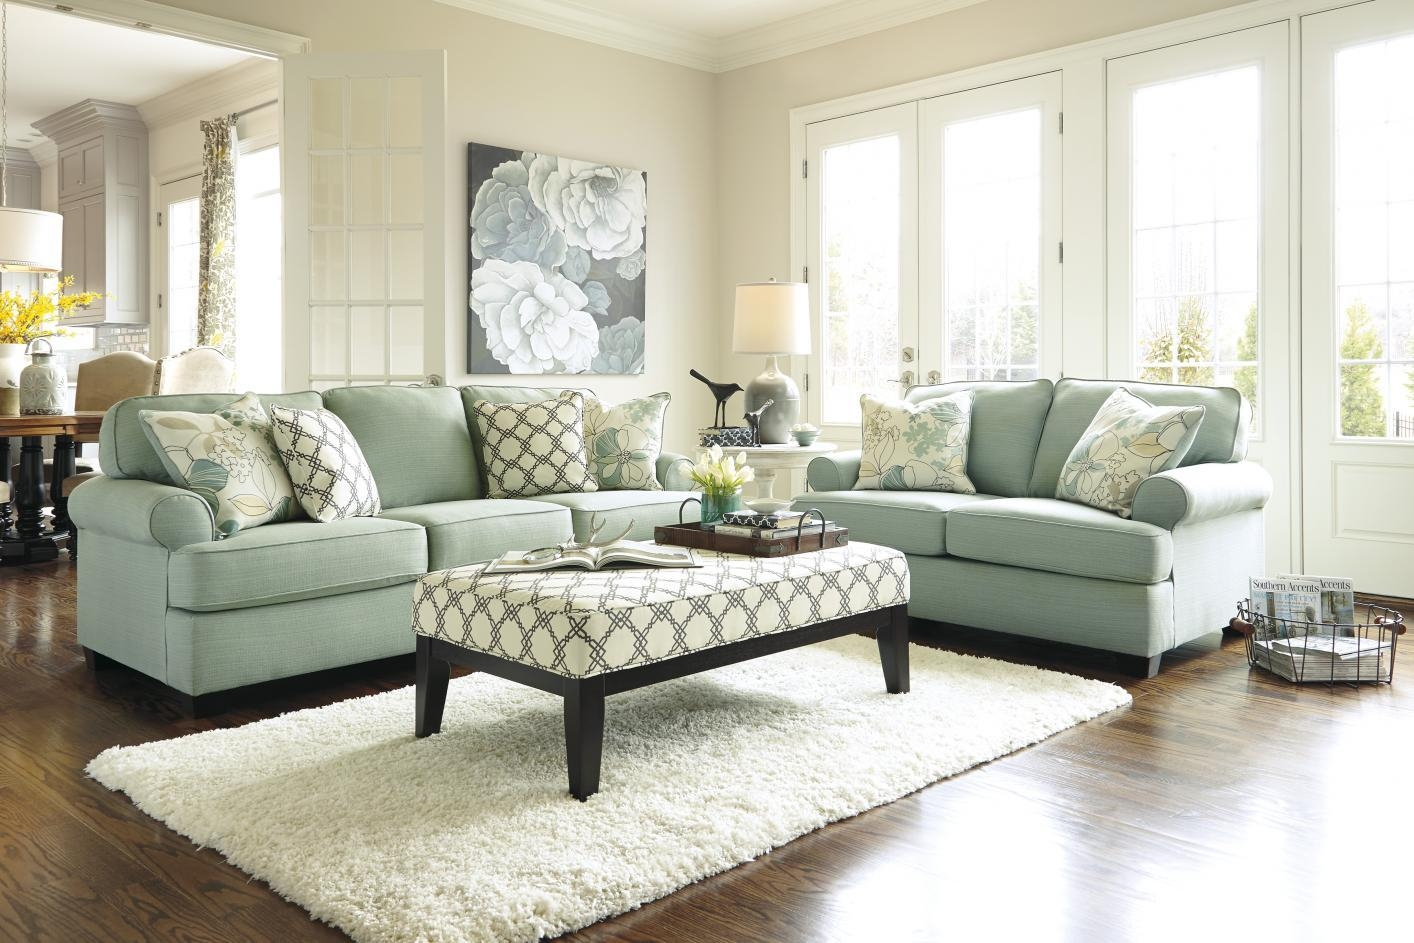 Featured Image of Seafoam Green Couches